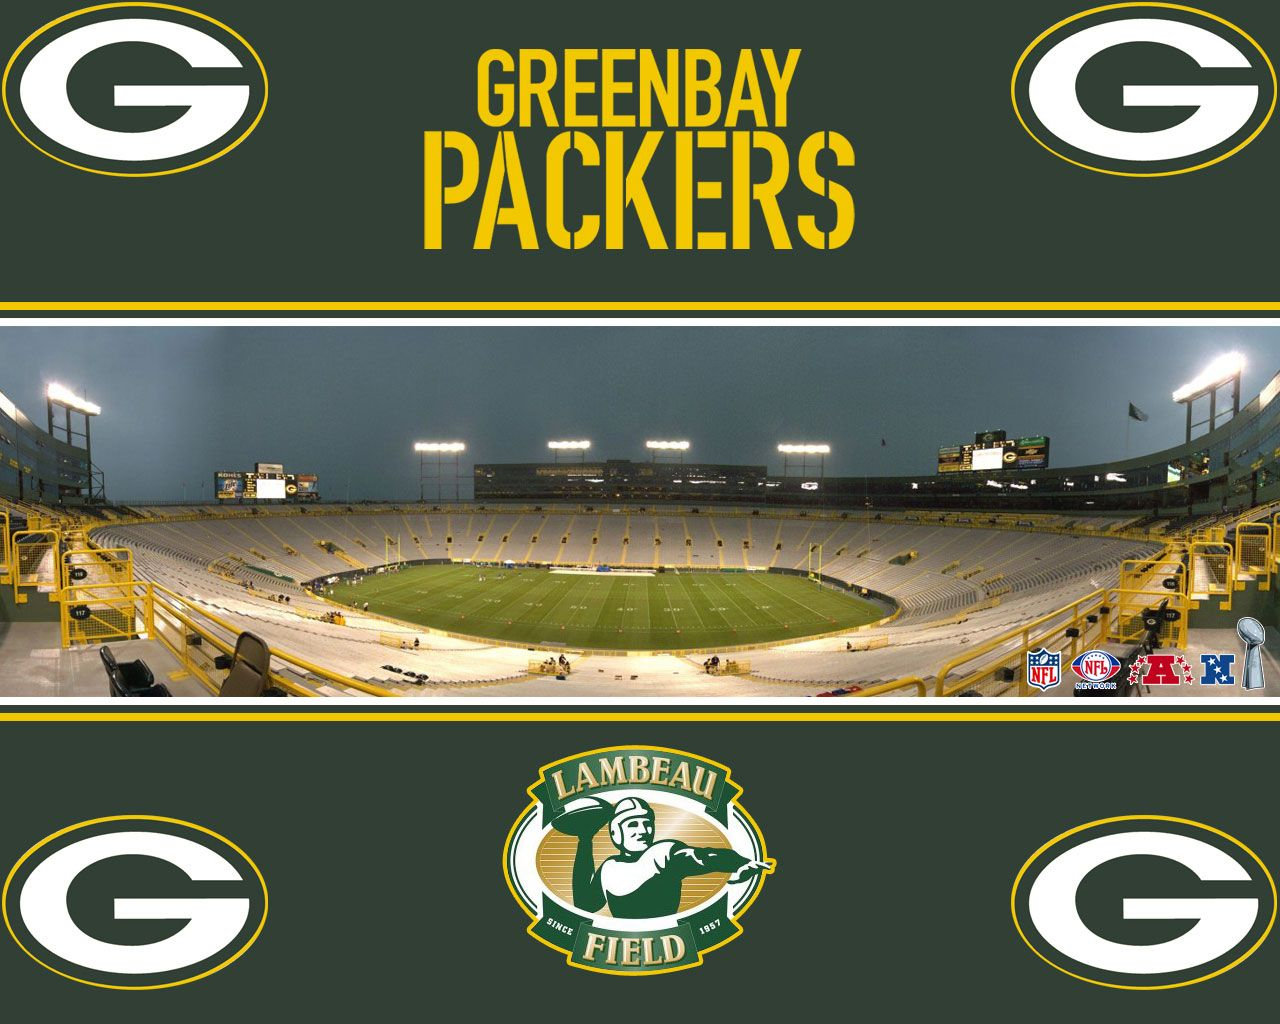 Lambeau Field Green Bay Wallpaper Sports that I love